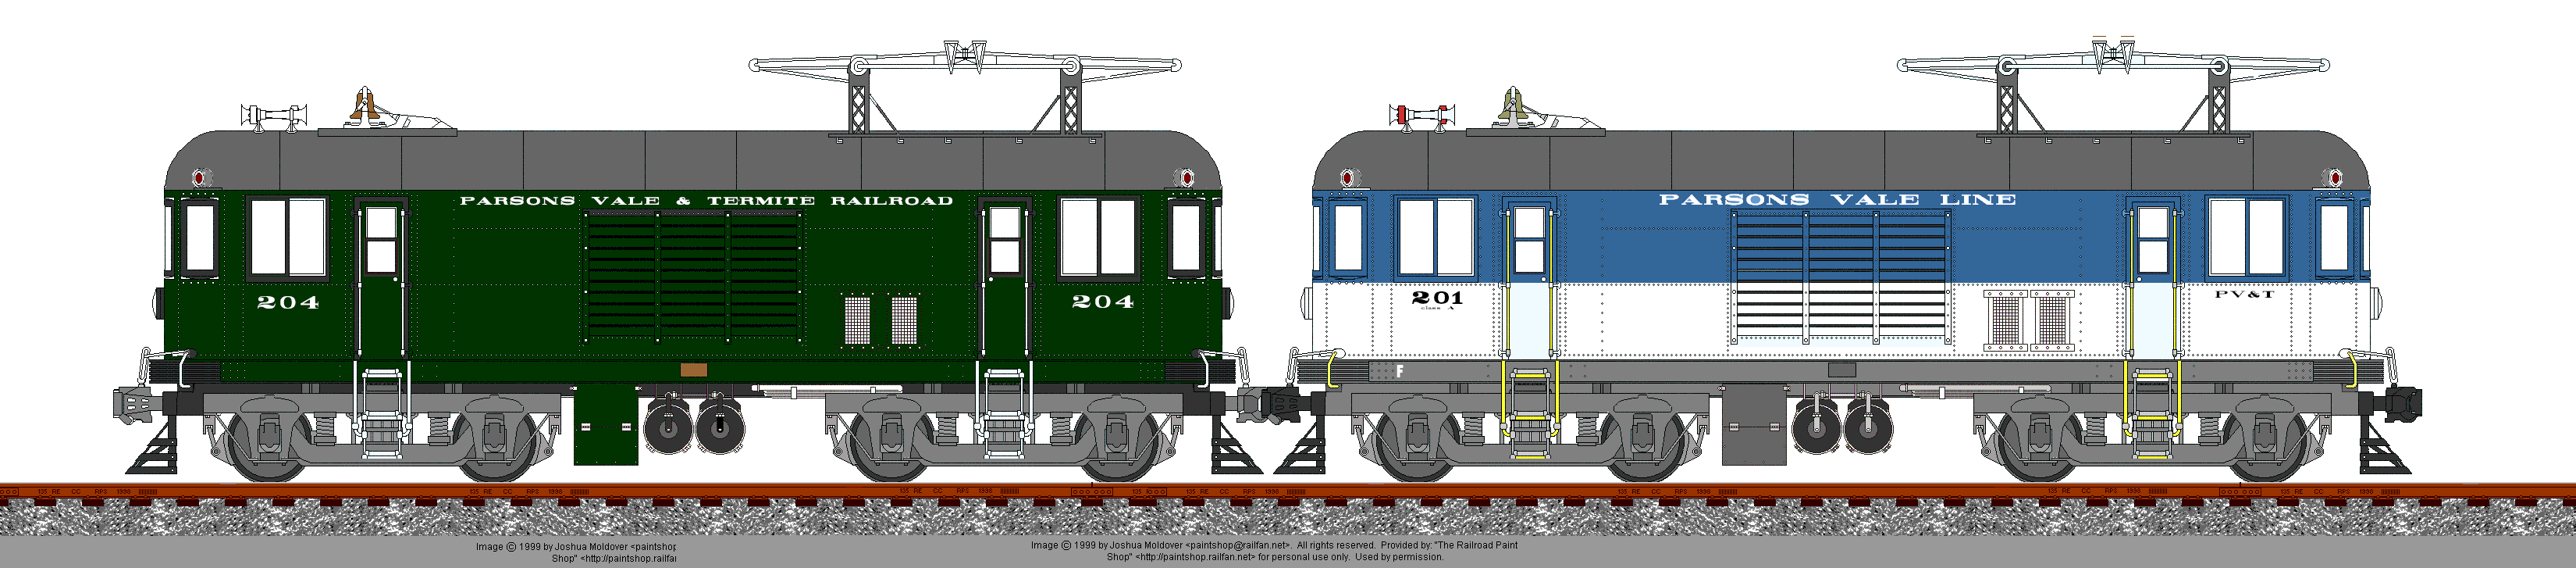 PV&T paint schemes;  old (almost-PRR dark green) & new (big sky blue + white)